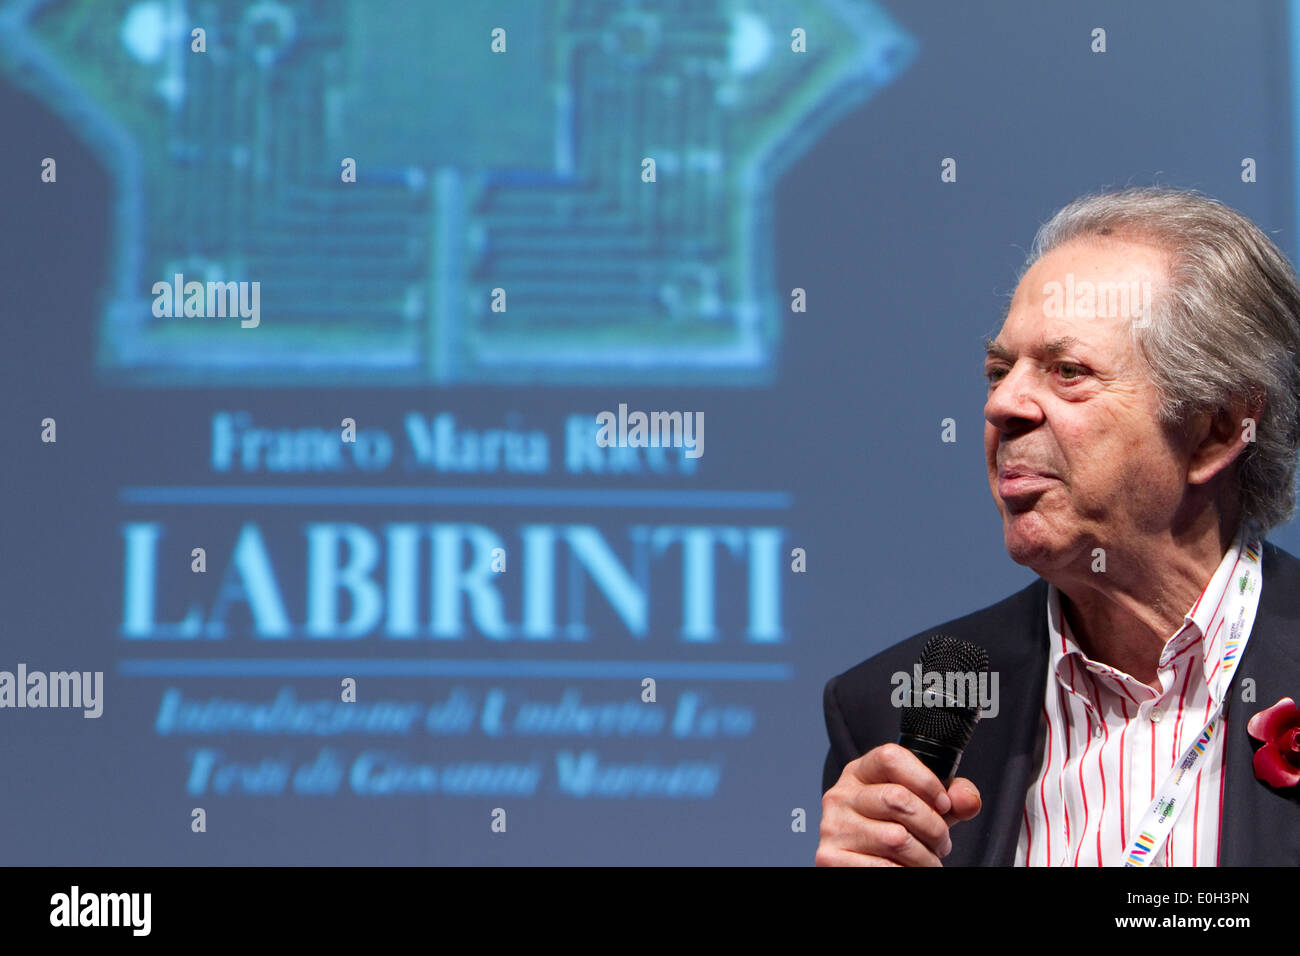 Italian publisher Franco Maria Ricci presents a book about labyrinths during a conference at Torino Book Fair. - Stock Image